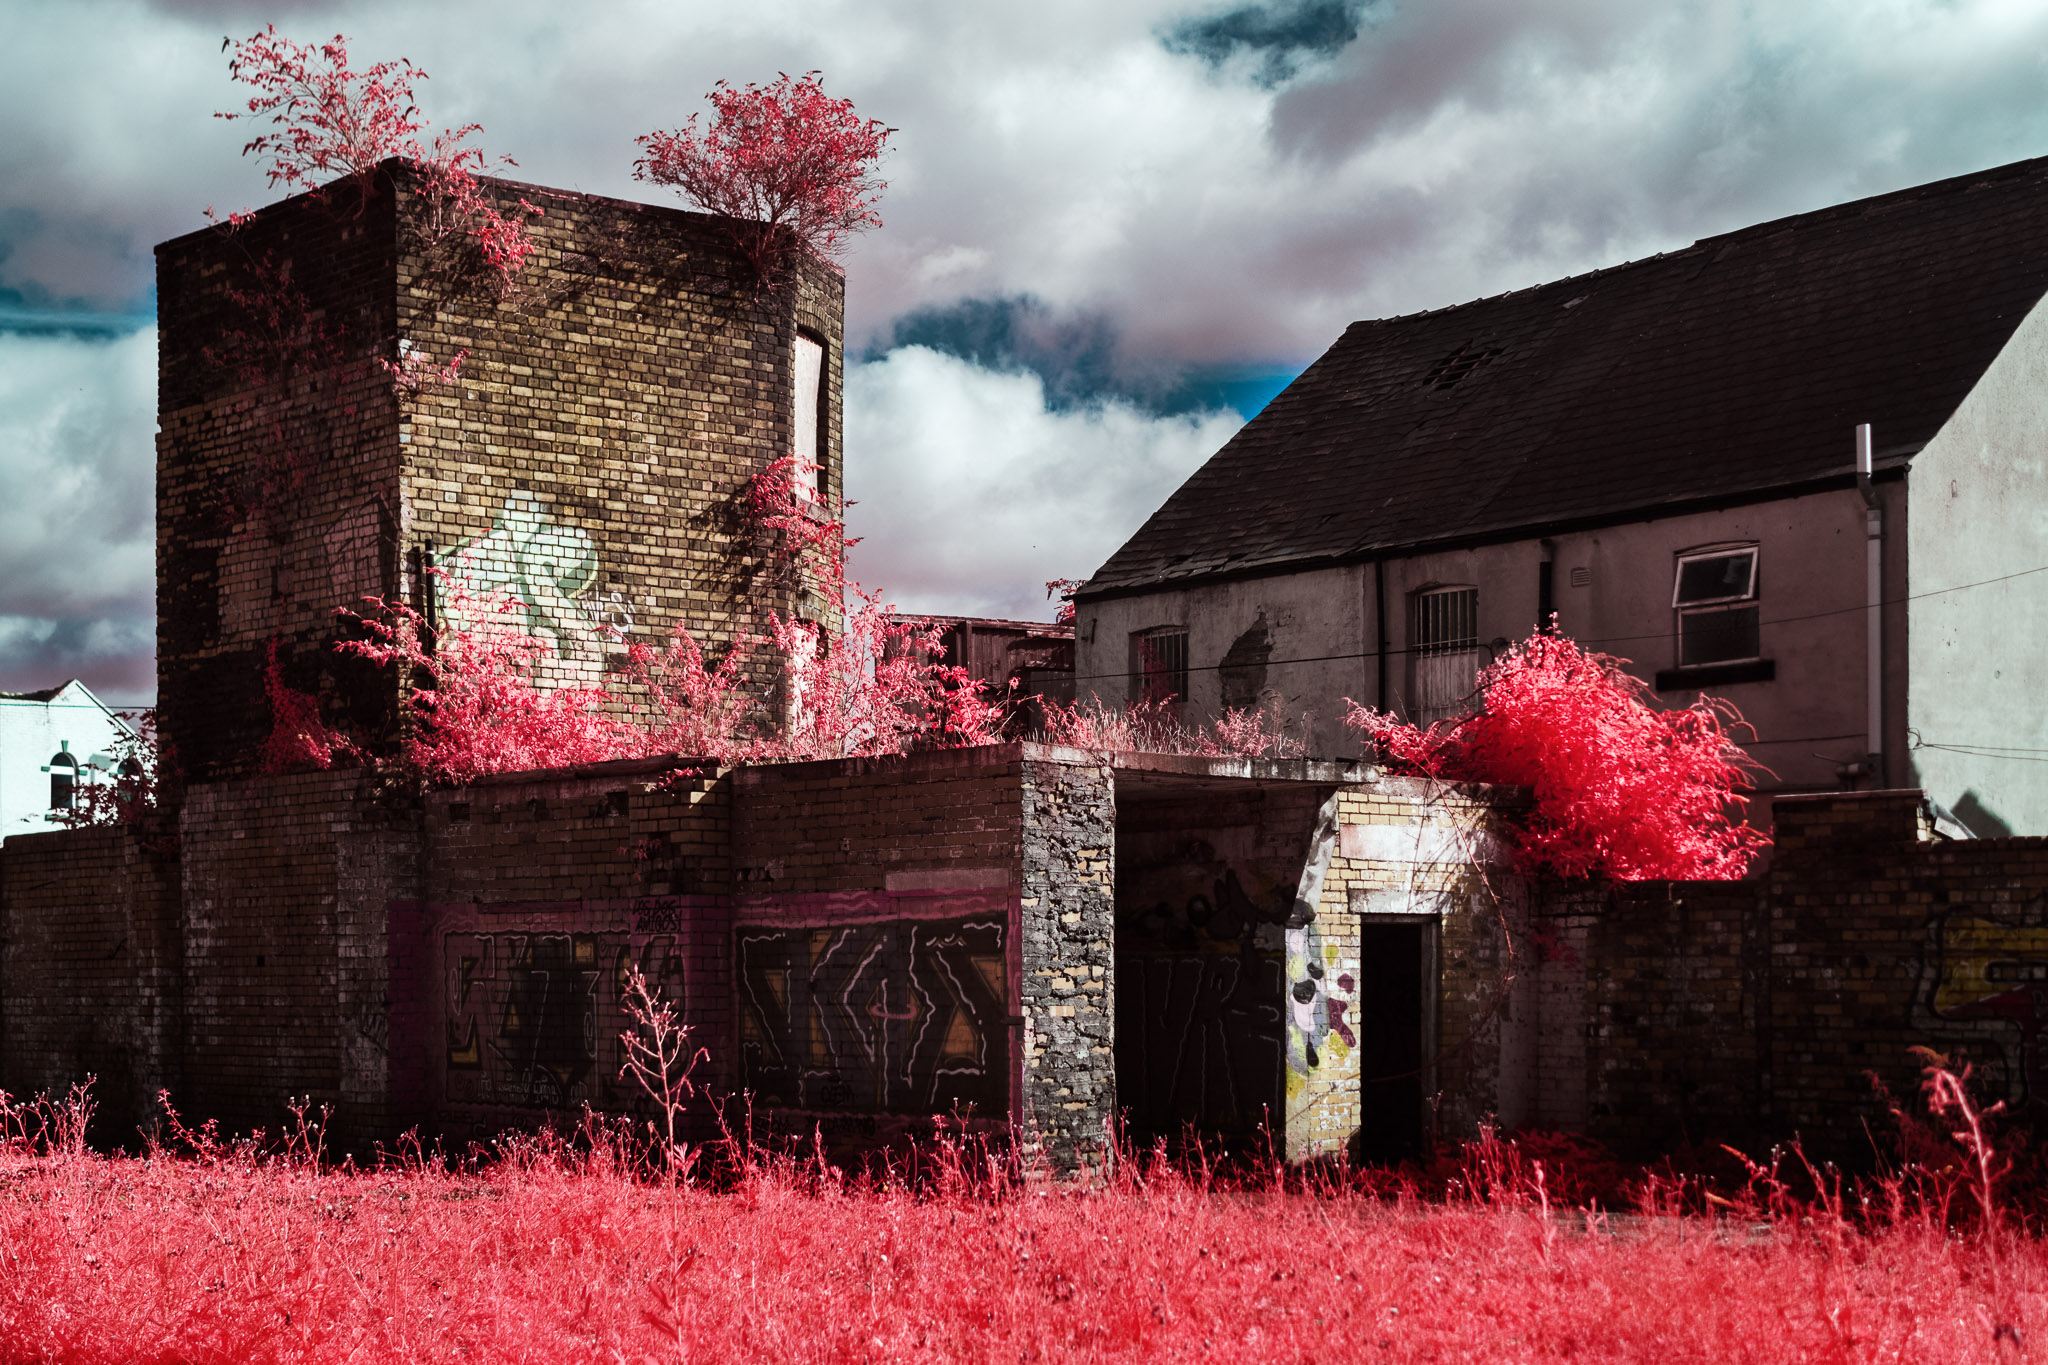 Kodak EIR Colour Infrared, Edgelands, Wasteland, Out of sight,  Tower ©Jonny Sutton